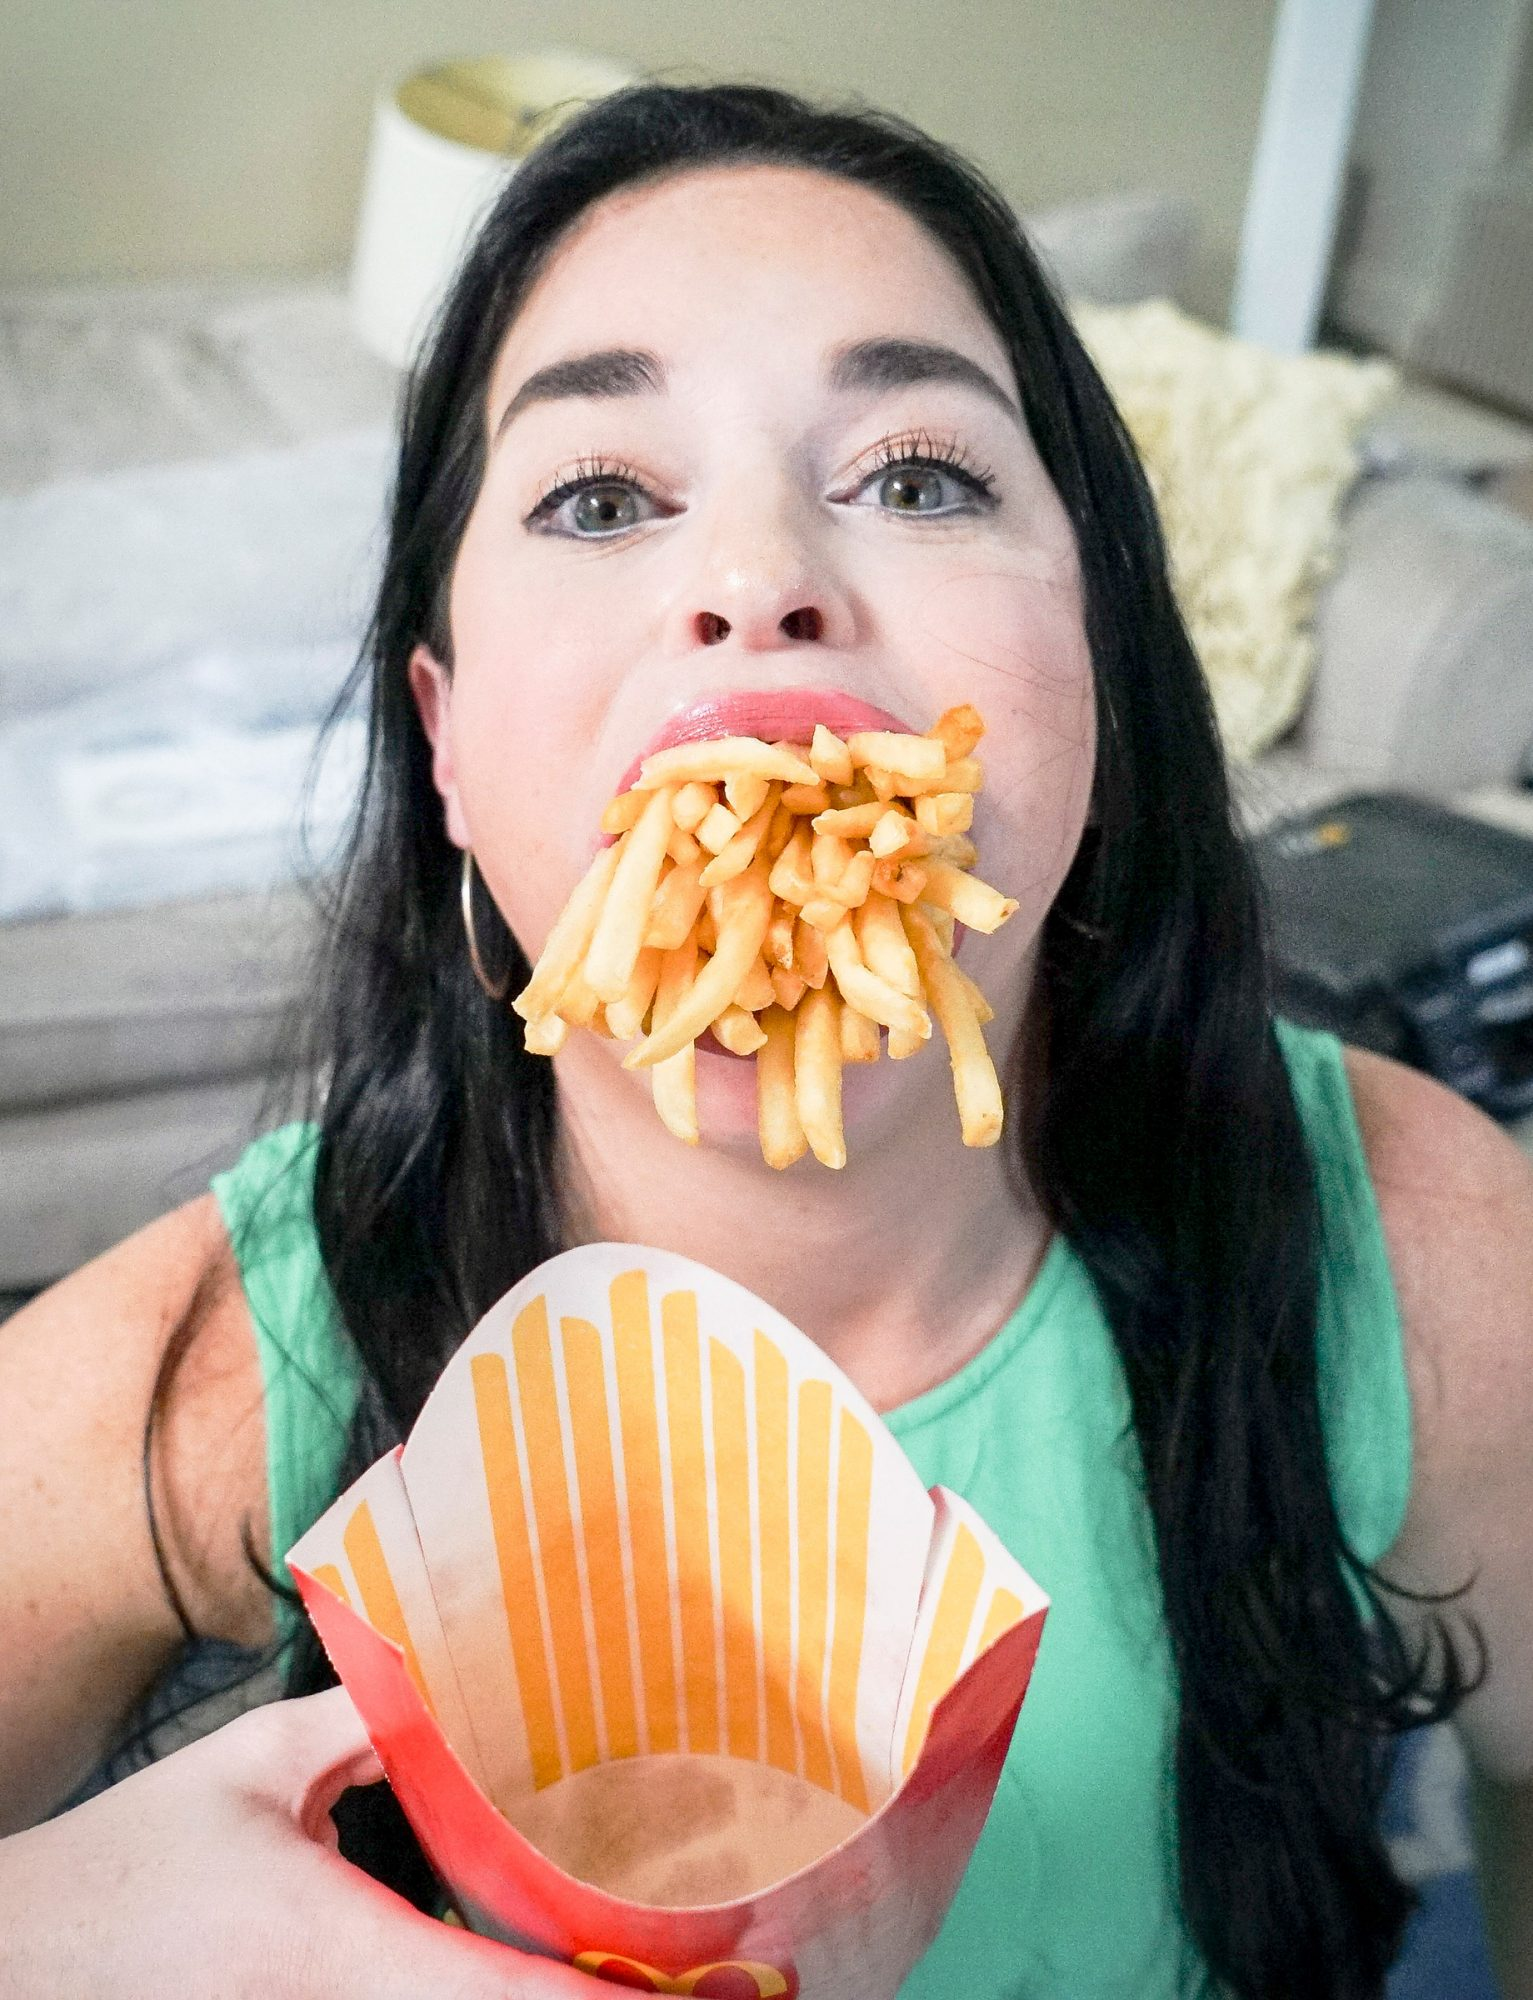 If you're ever scrolling through TikTok and encounter a woman with style, a sense of humor, and an incredibly large mouth, you've most likely stumbled upon GUINNESS WORLD RECORDS™ title holder Samantha Ramsdell.